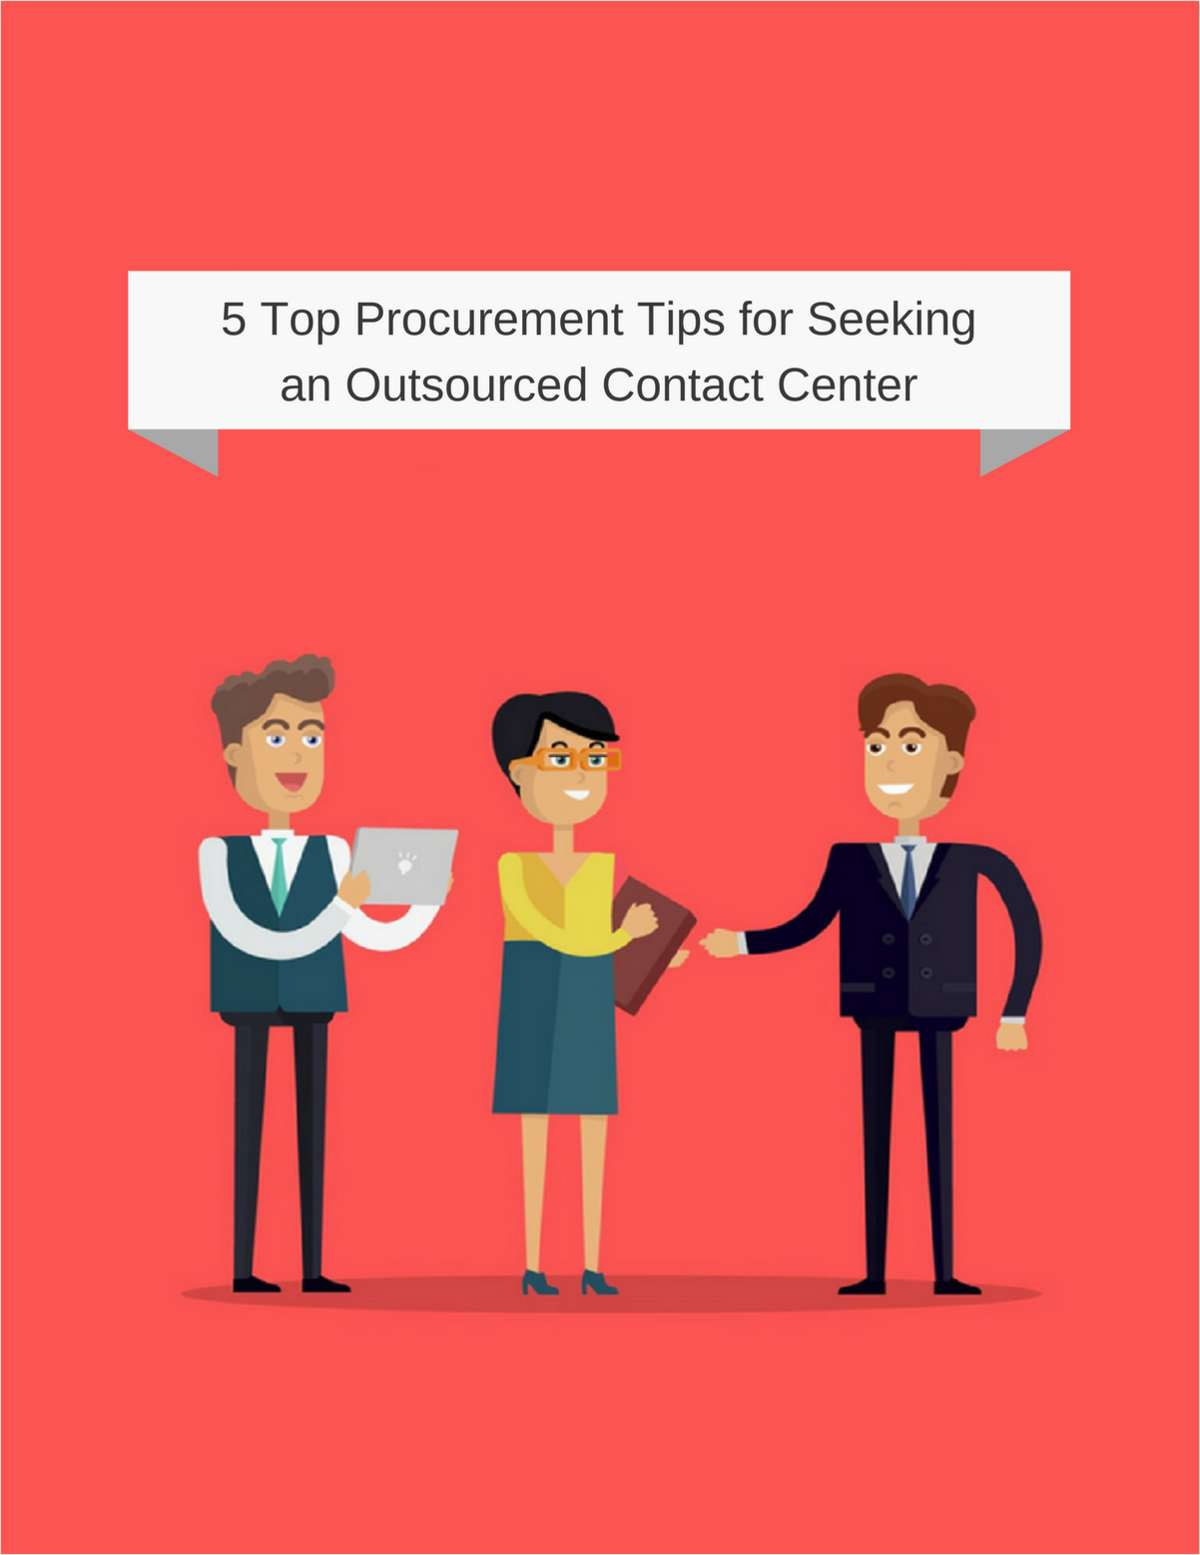 5 Top Procurement Tips for Seeking an Outsourced Contact Center